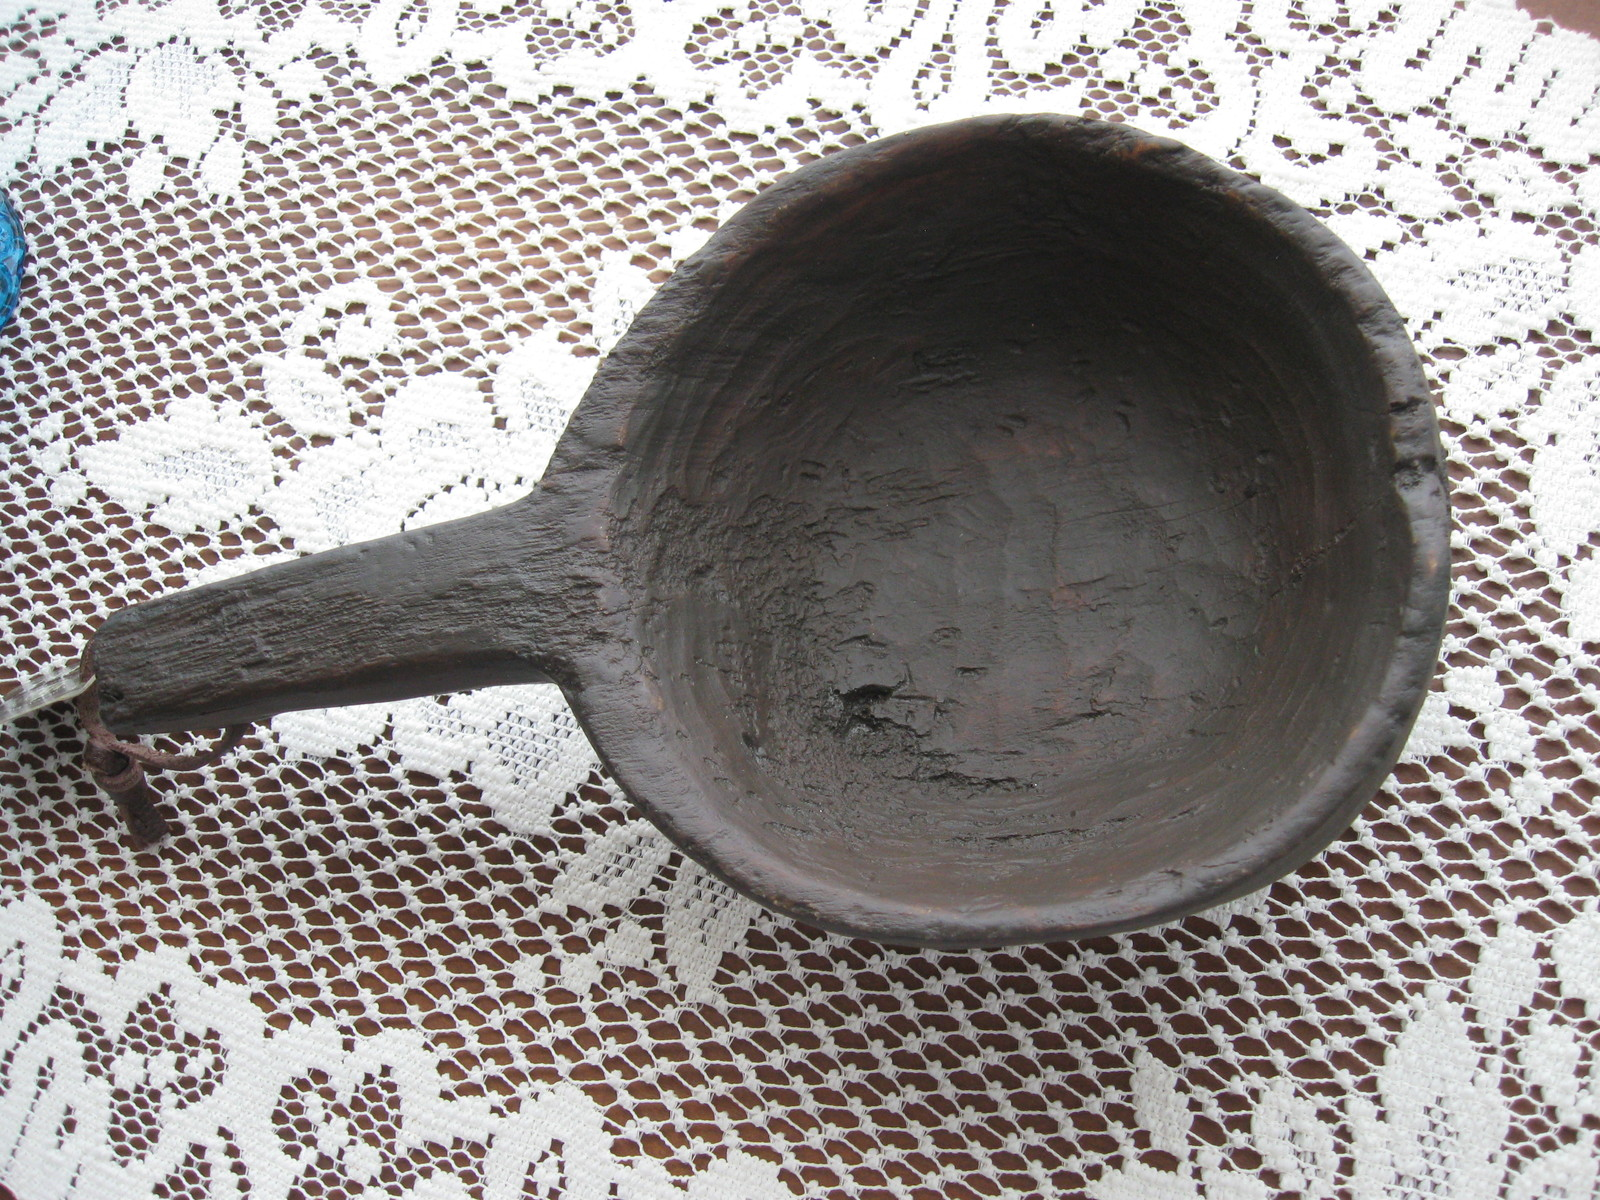 Decorative Resin Kitchen Scoop/Spoon - Country/Primitive/Rustic - Leather Hanger